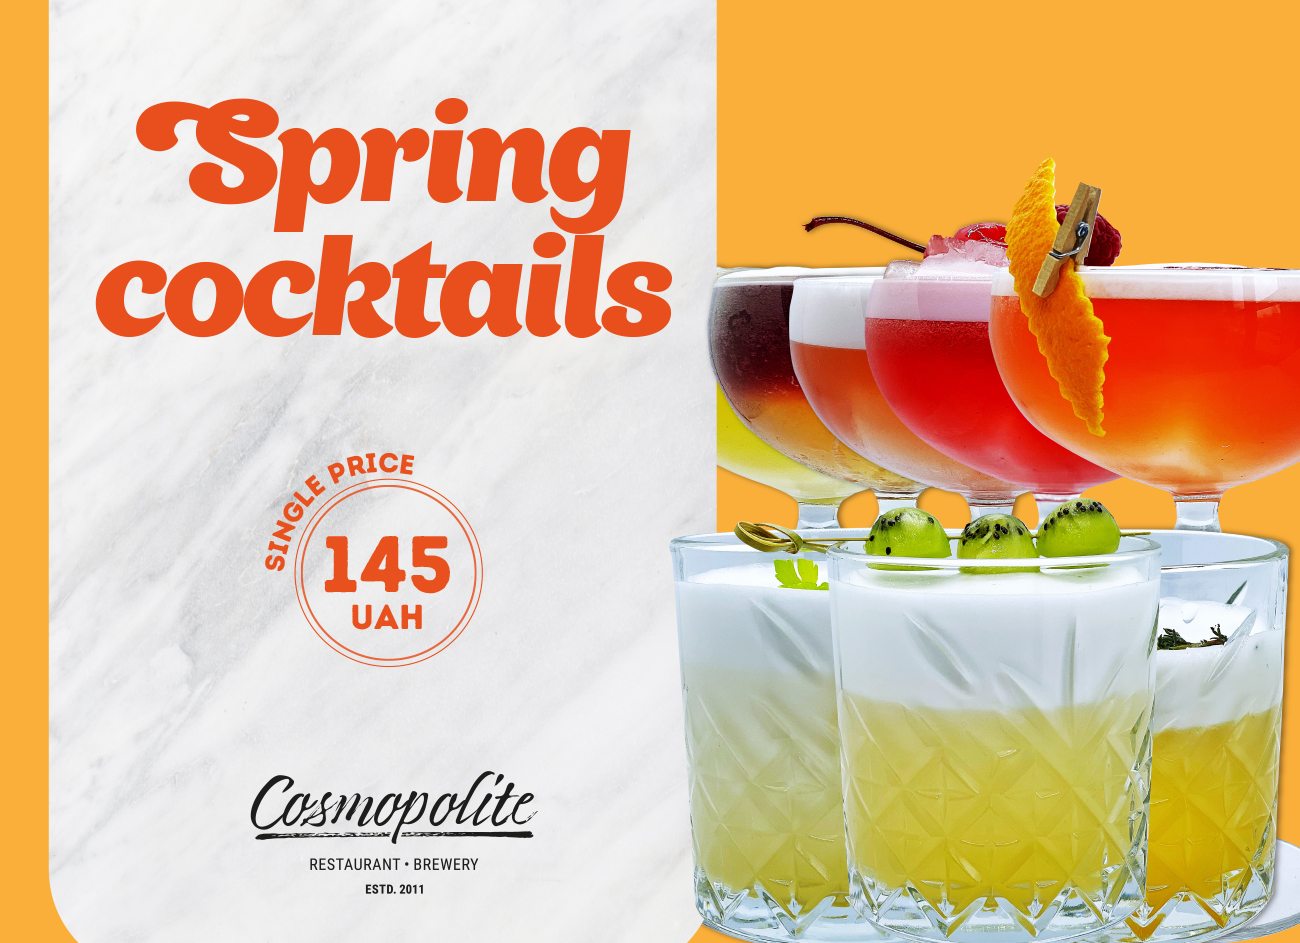 Introducing all-new spring cocktails at Cosmopolite!